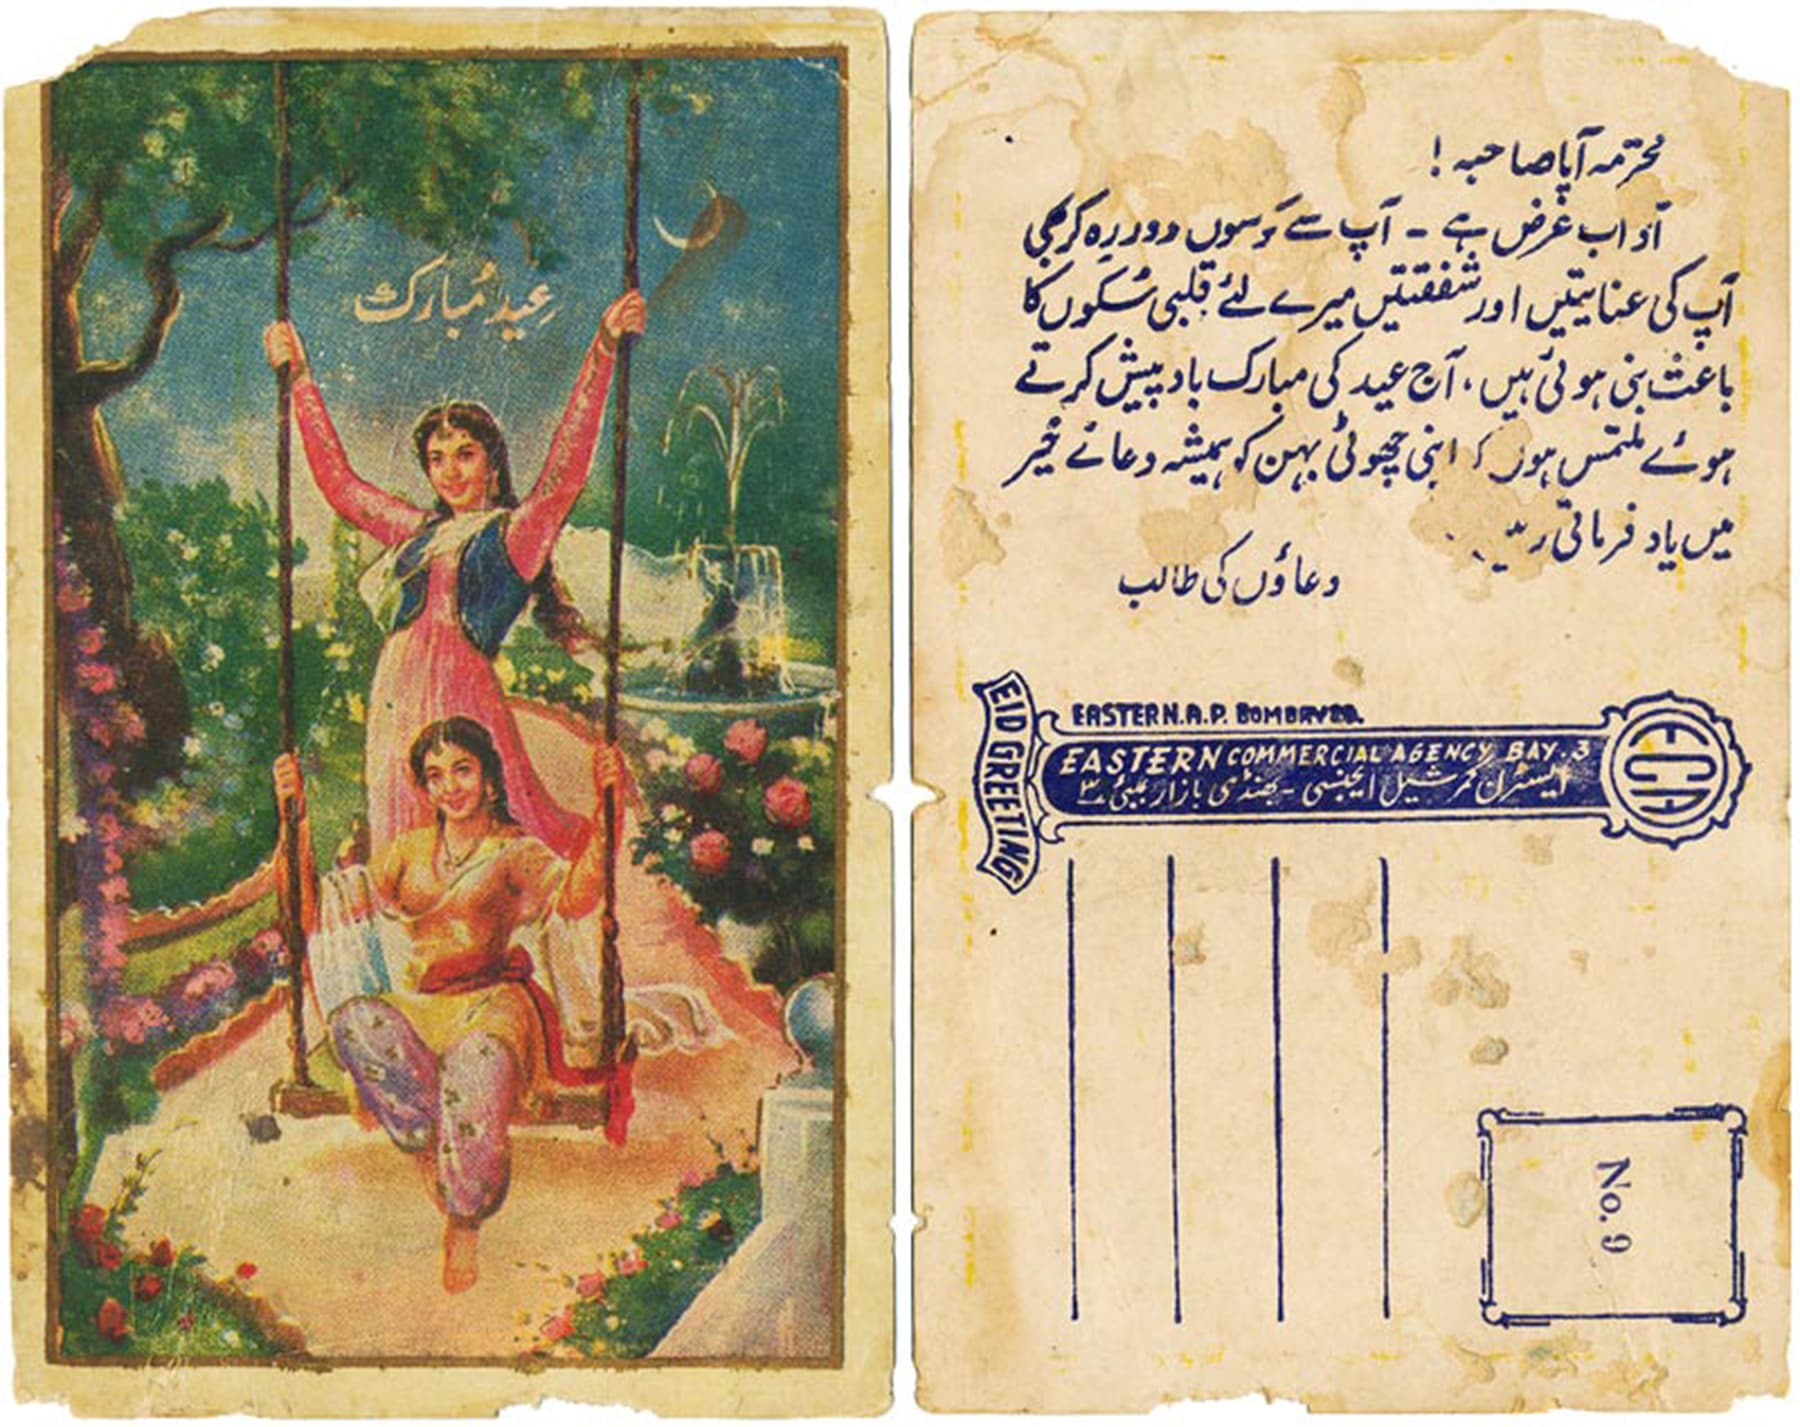 Salutation of a young girl to her elder sister. Eid card printed by Eastern Commercial Agency, Bombay. From the Priya Paul Collection, New Delhi.